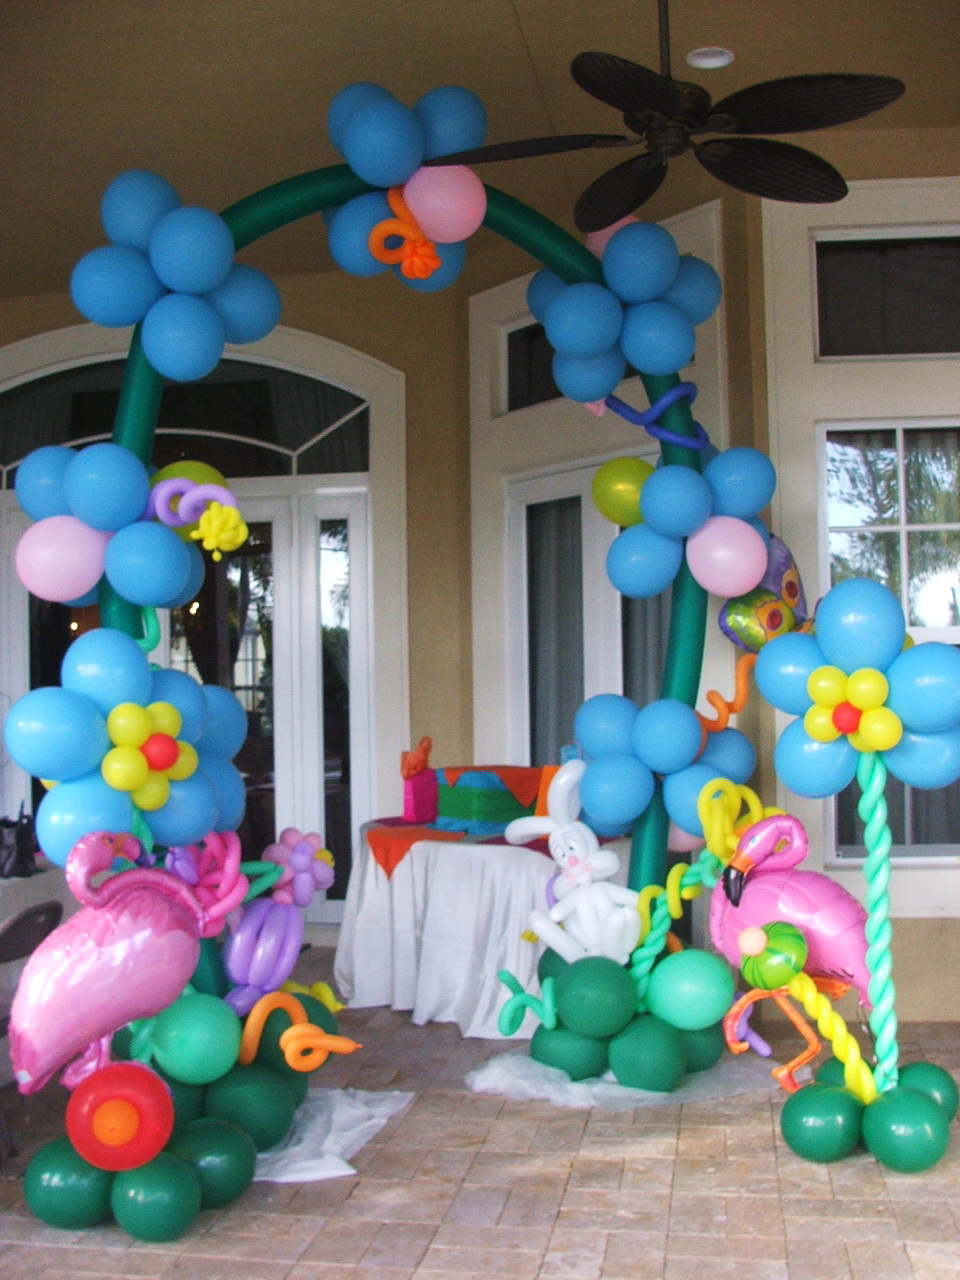 Wonderland Balloon Arch